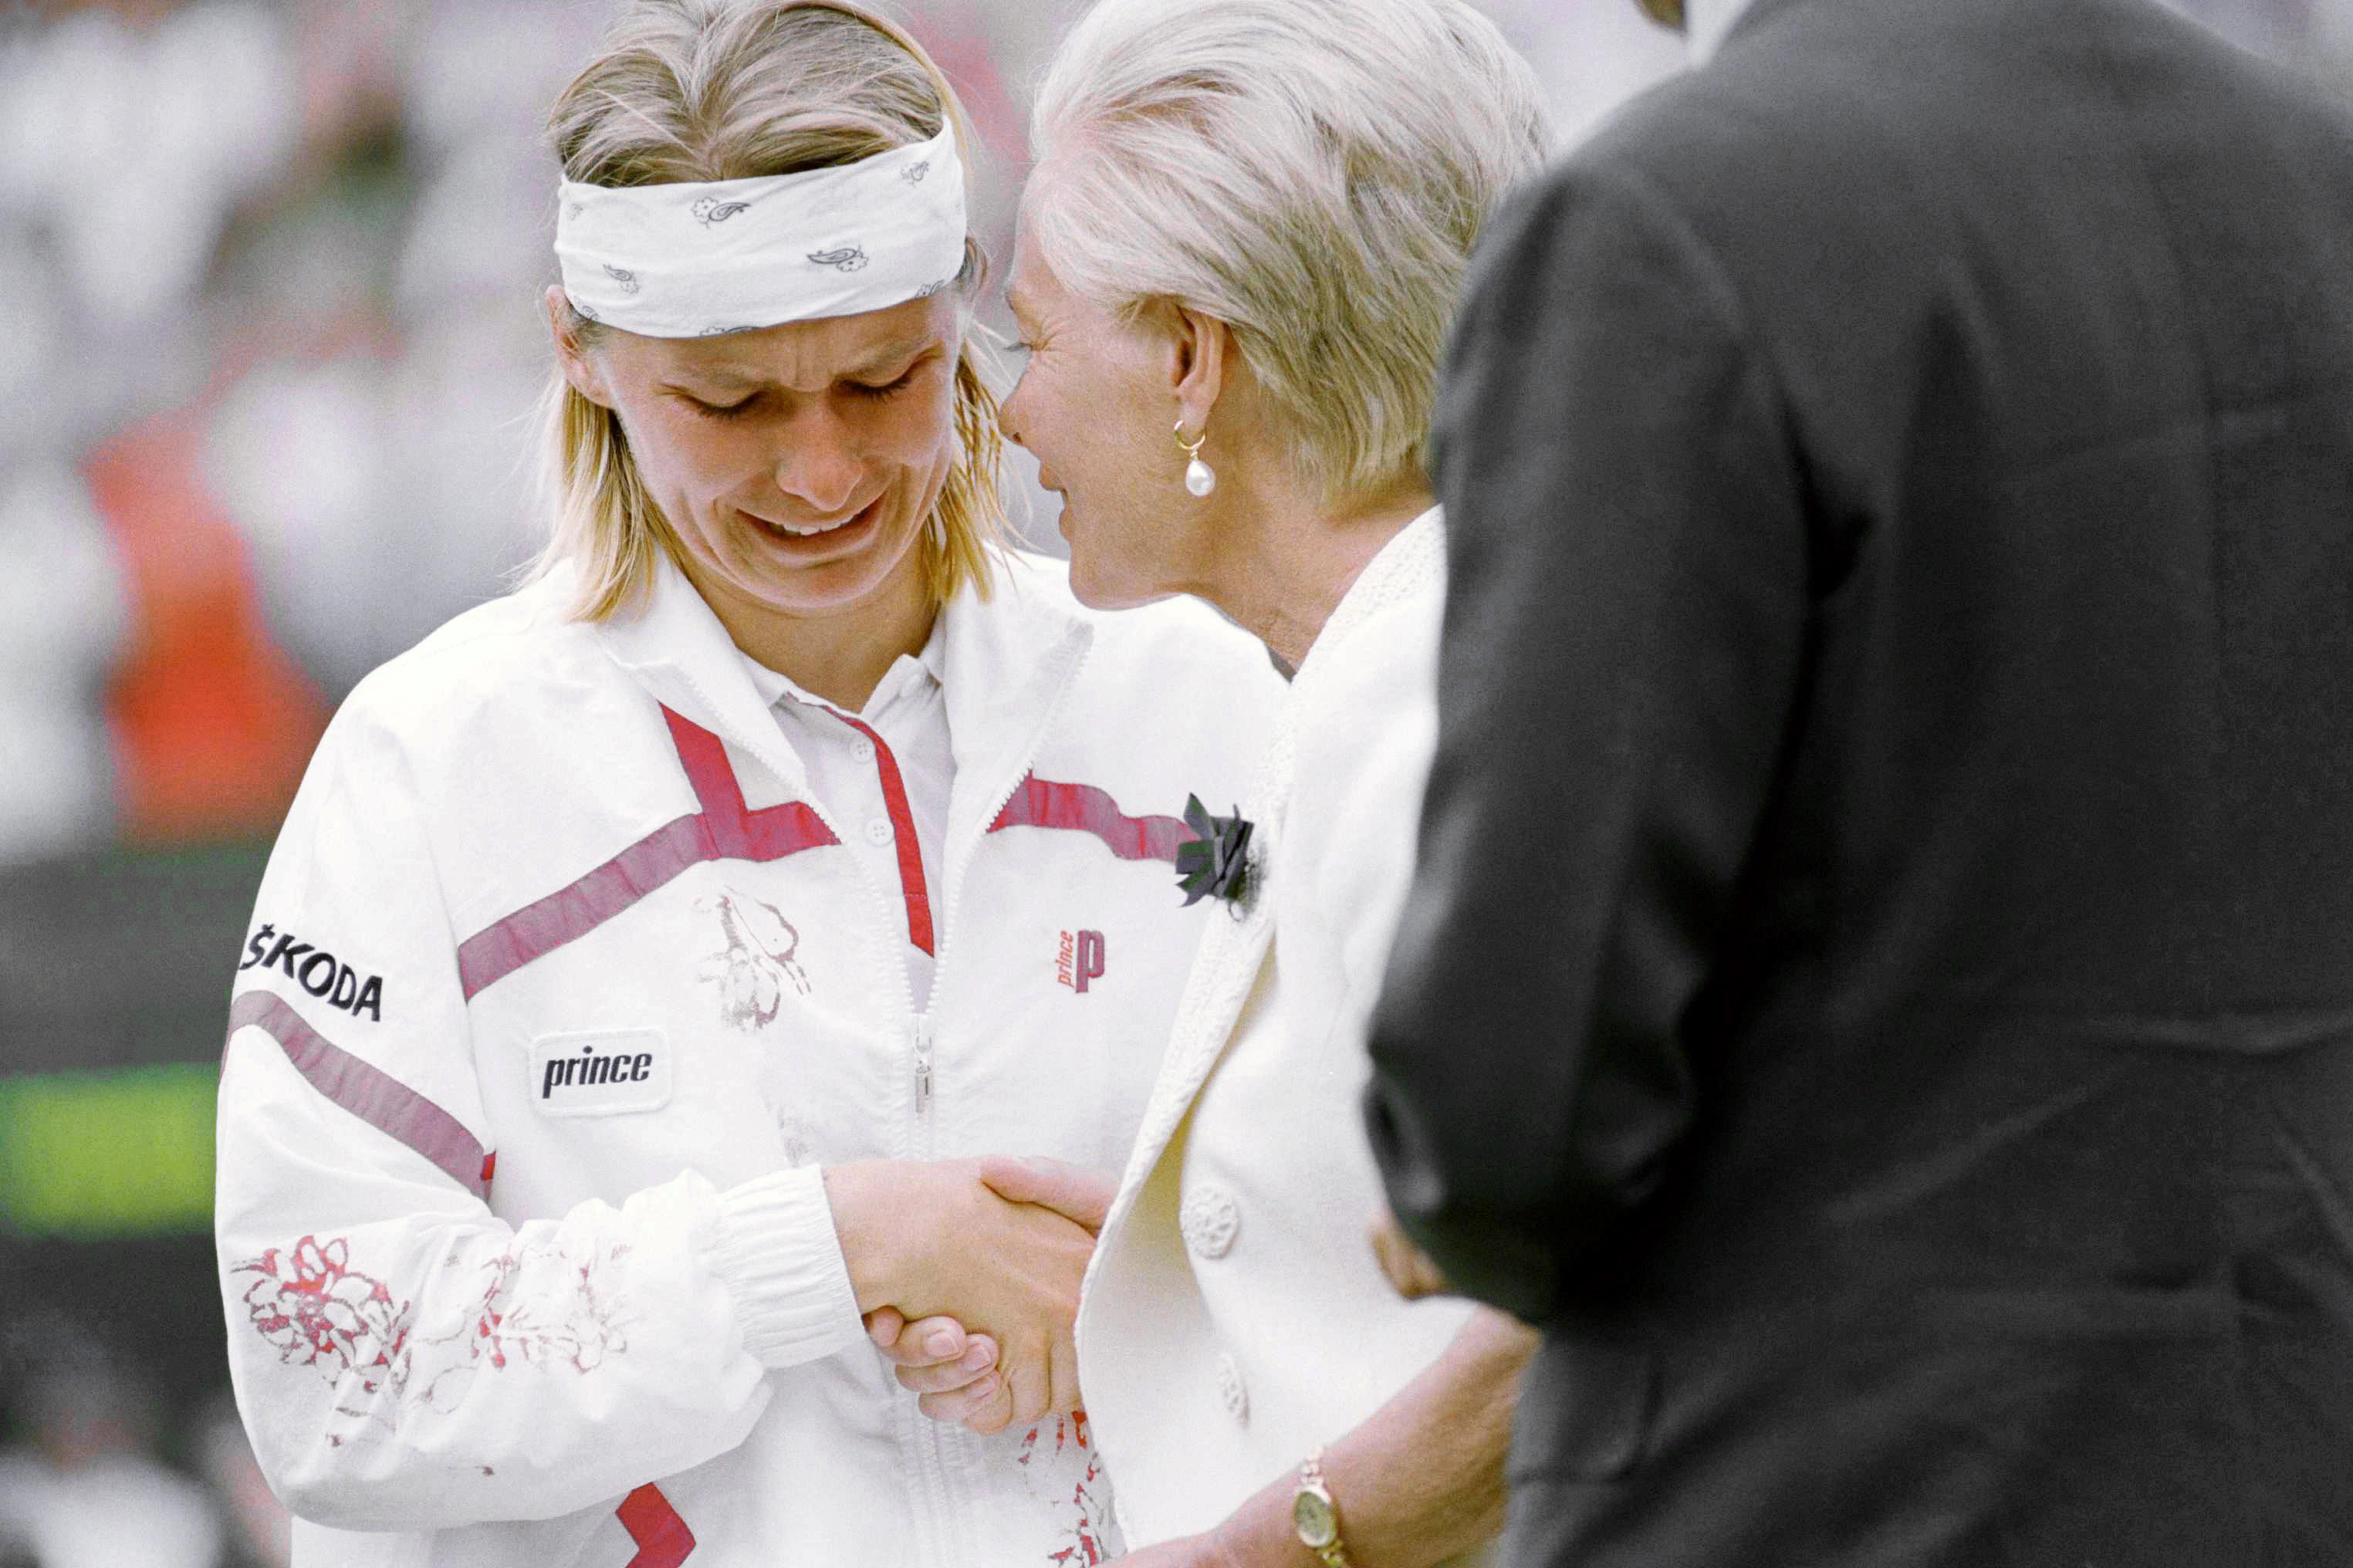 Jana was famously consoled by the Duchess of Kent when she burst into tears after losing to German great Steffi Graf at Wimbledon in 1993